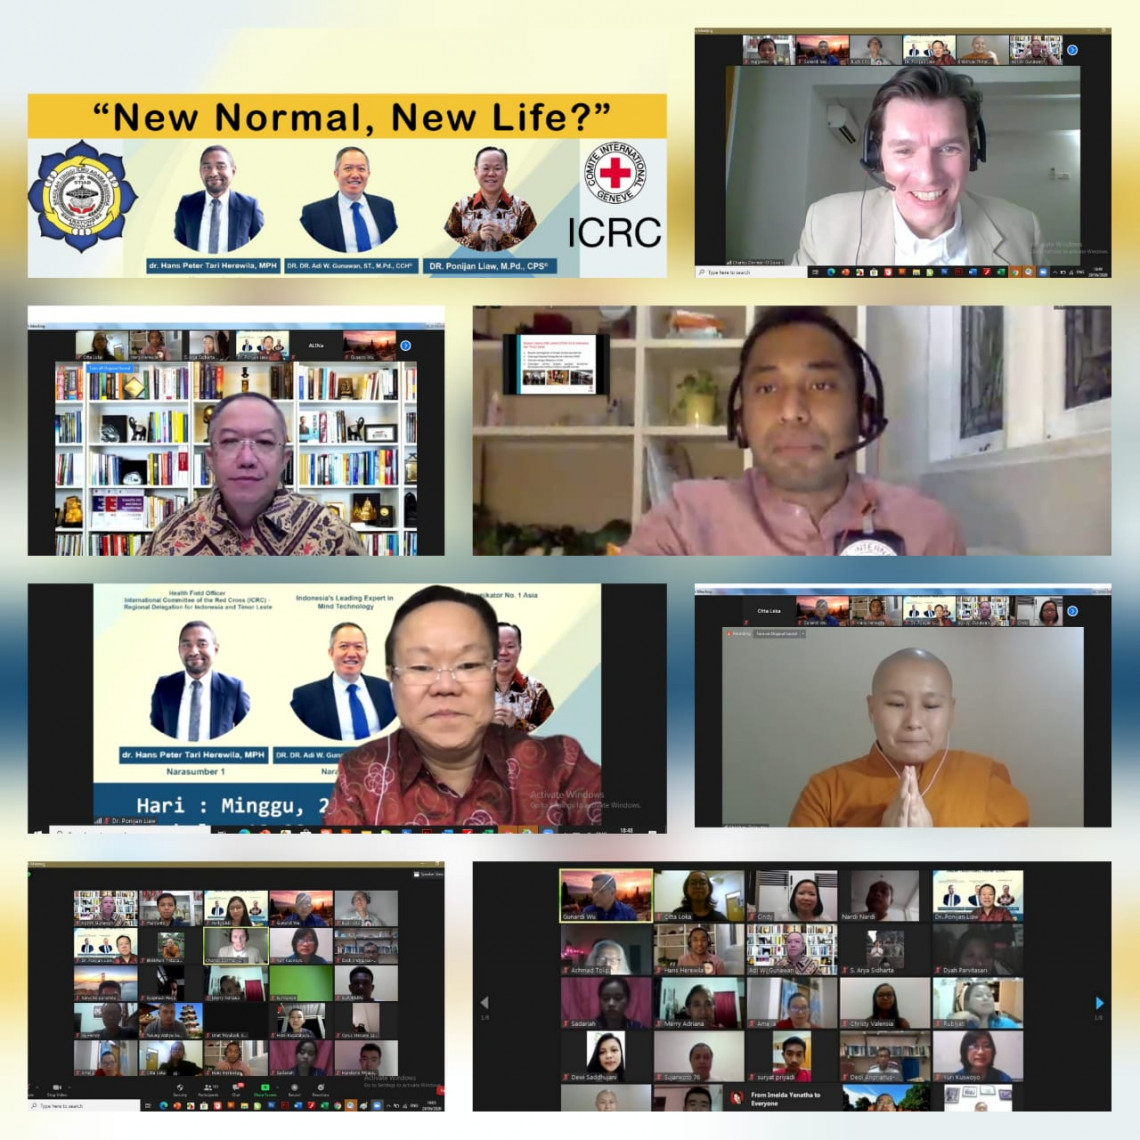 A webinar on the new normal way of living, during the COVID-19 pandemic, was organized by the ICRC and the Buddhist community in Indonesia.